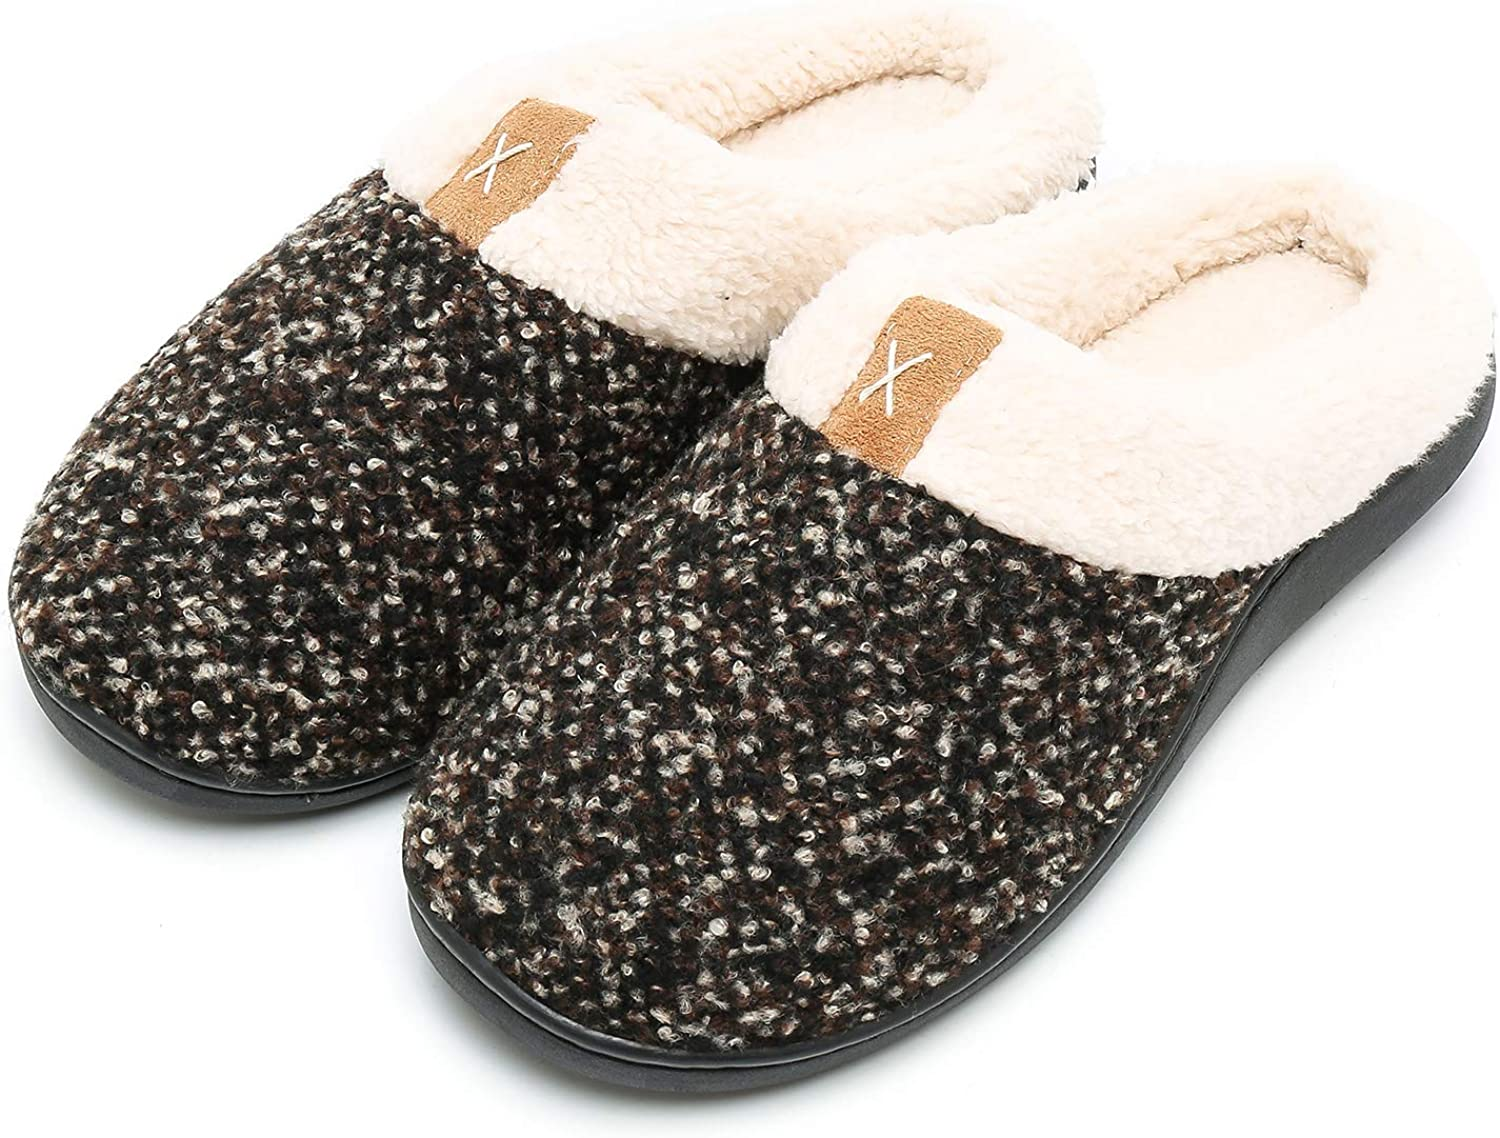 Caissip Women's Cozy Memory Foam Slippers Fuzzy Wool-Like Plush Fleece Lined House shoes w Indoor Outdoor